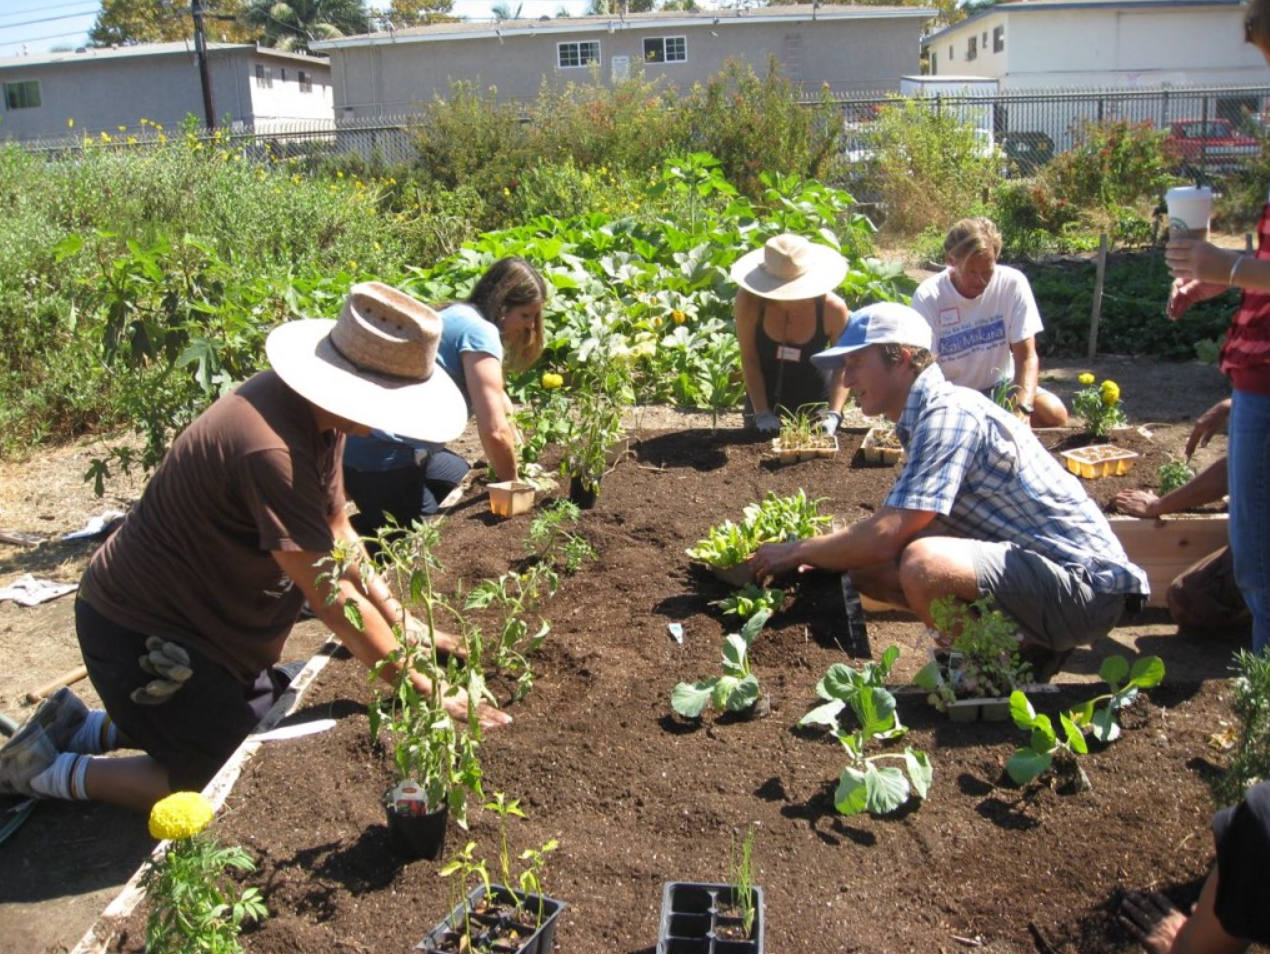 Orange County gardening for food